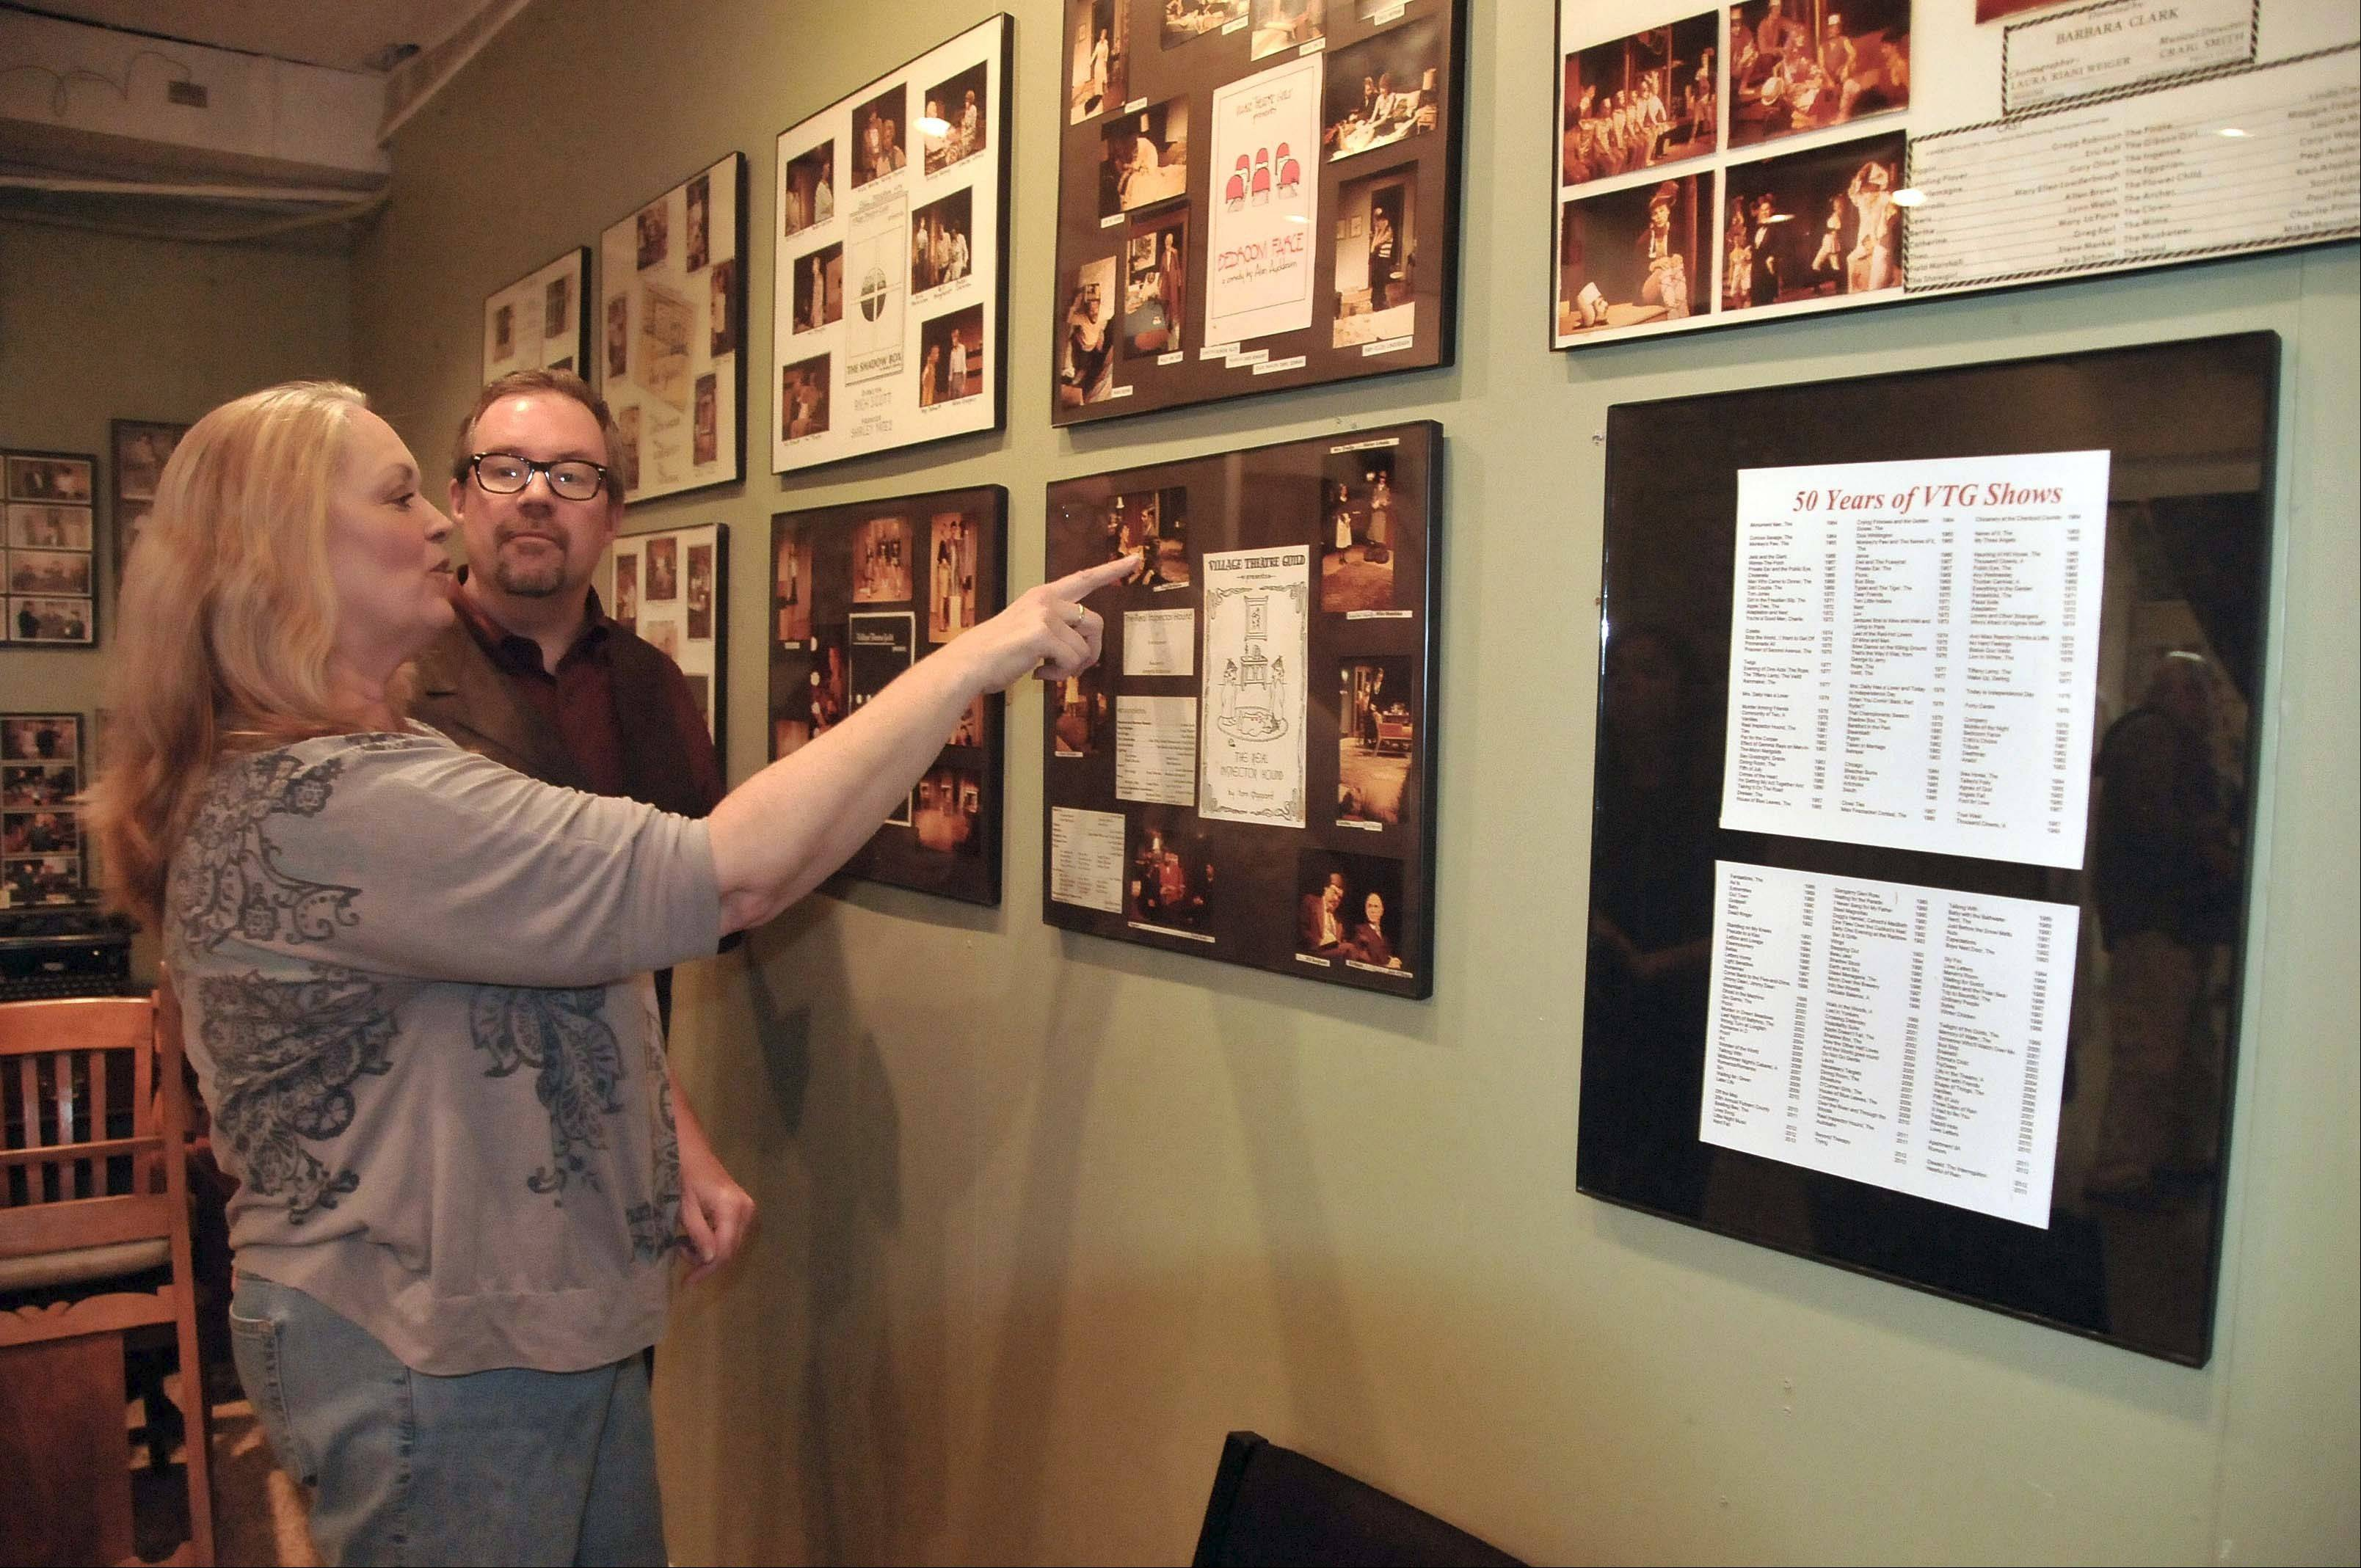 Doug Orlyk and Karen Bronson reminisce over photos of past musicals performed at the Village Theatre in Glen Ellyn.